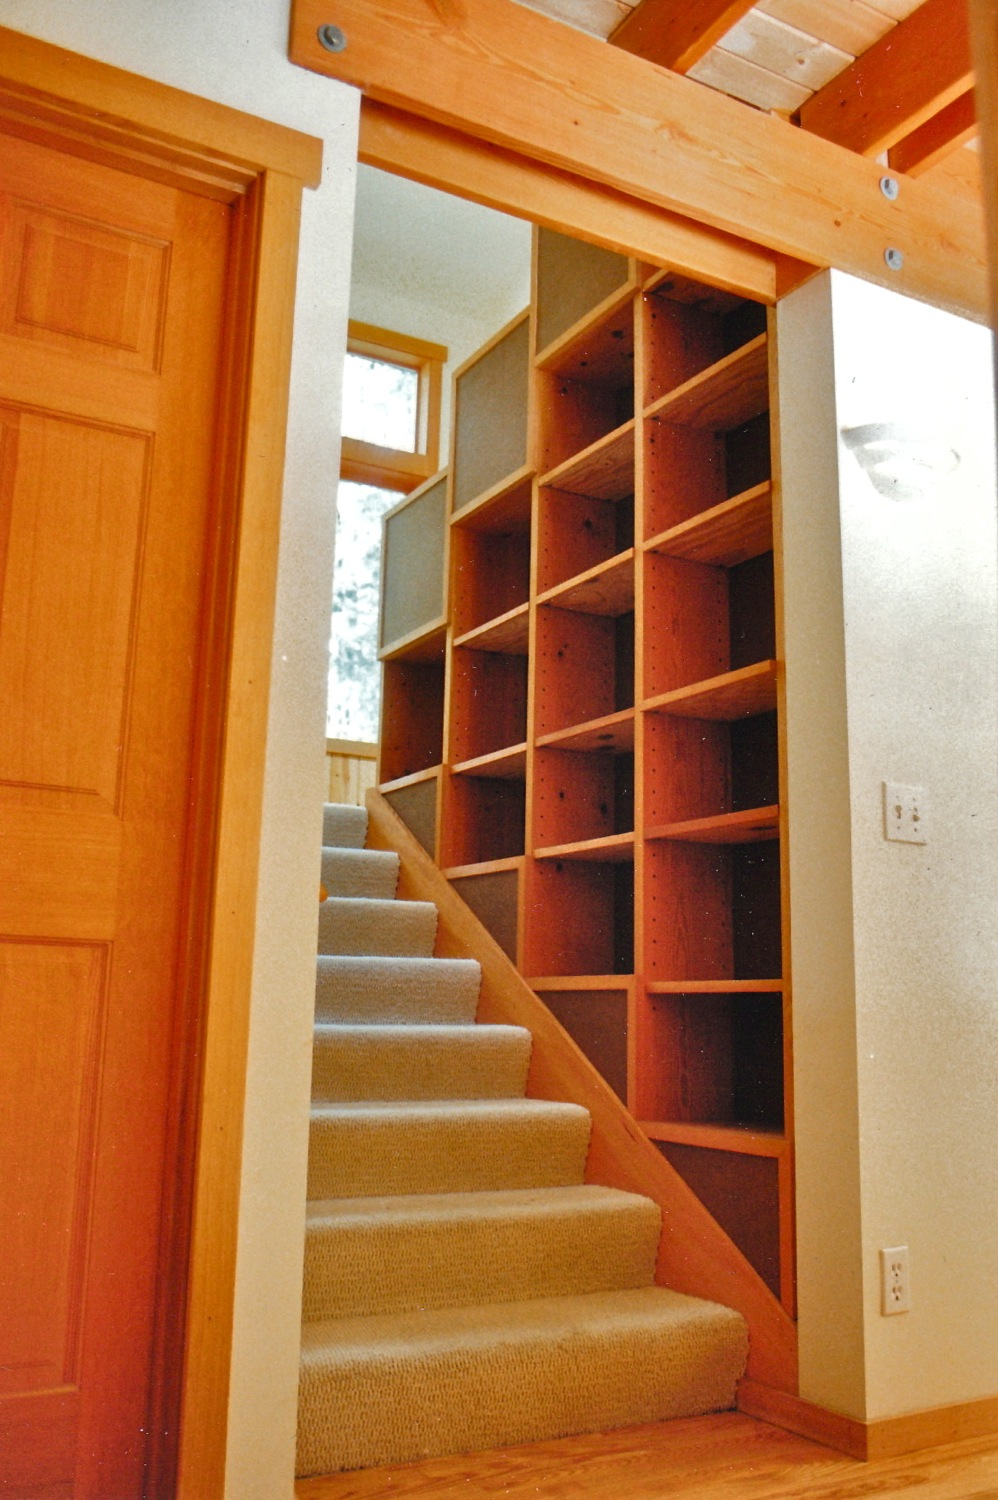 Hyla 2 - Stair Cubbies.jpg